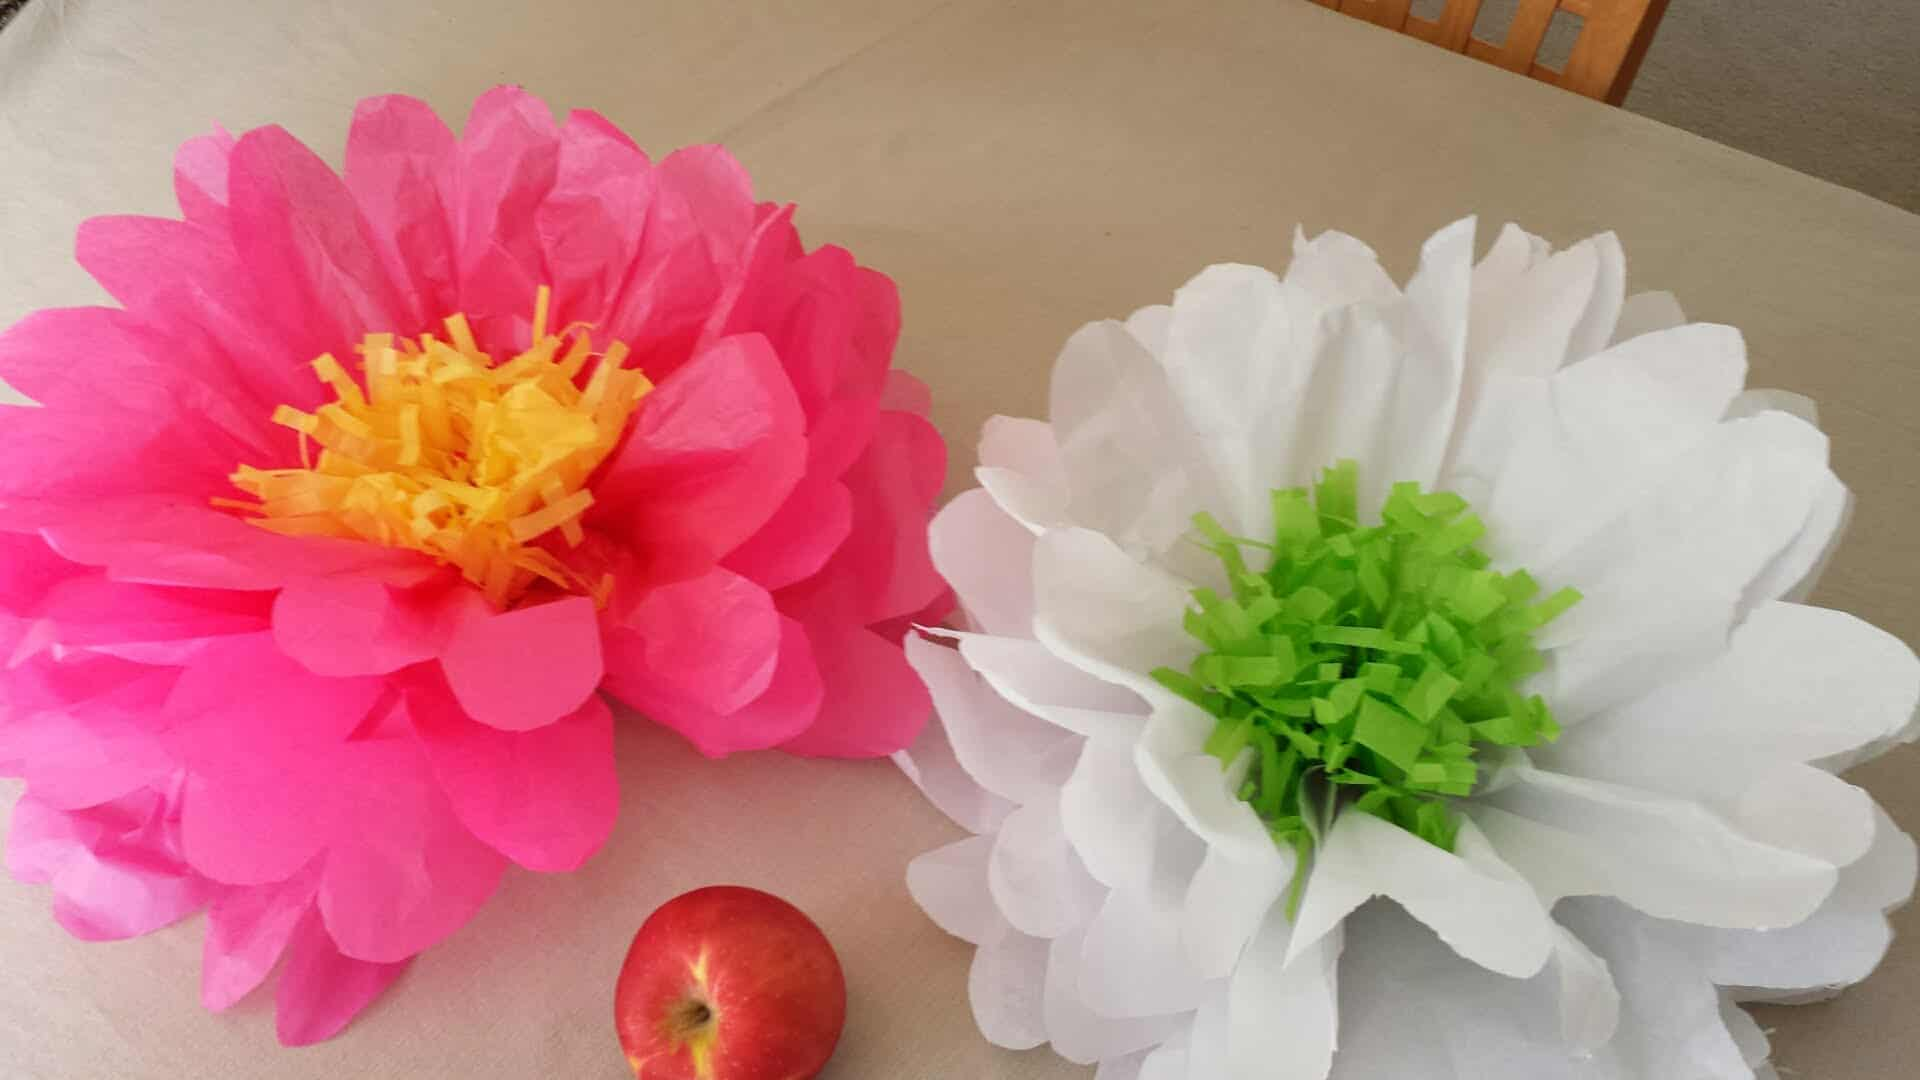 Tissue paper flowers with shredded tissue centres